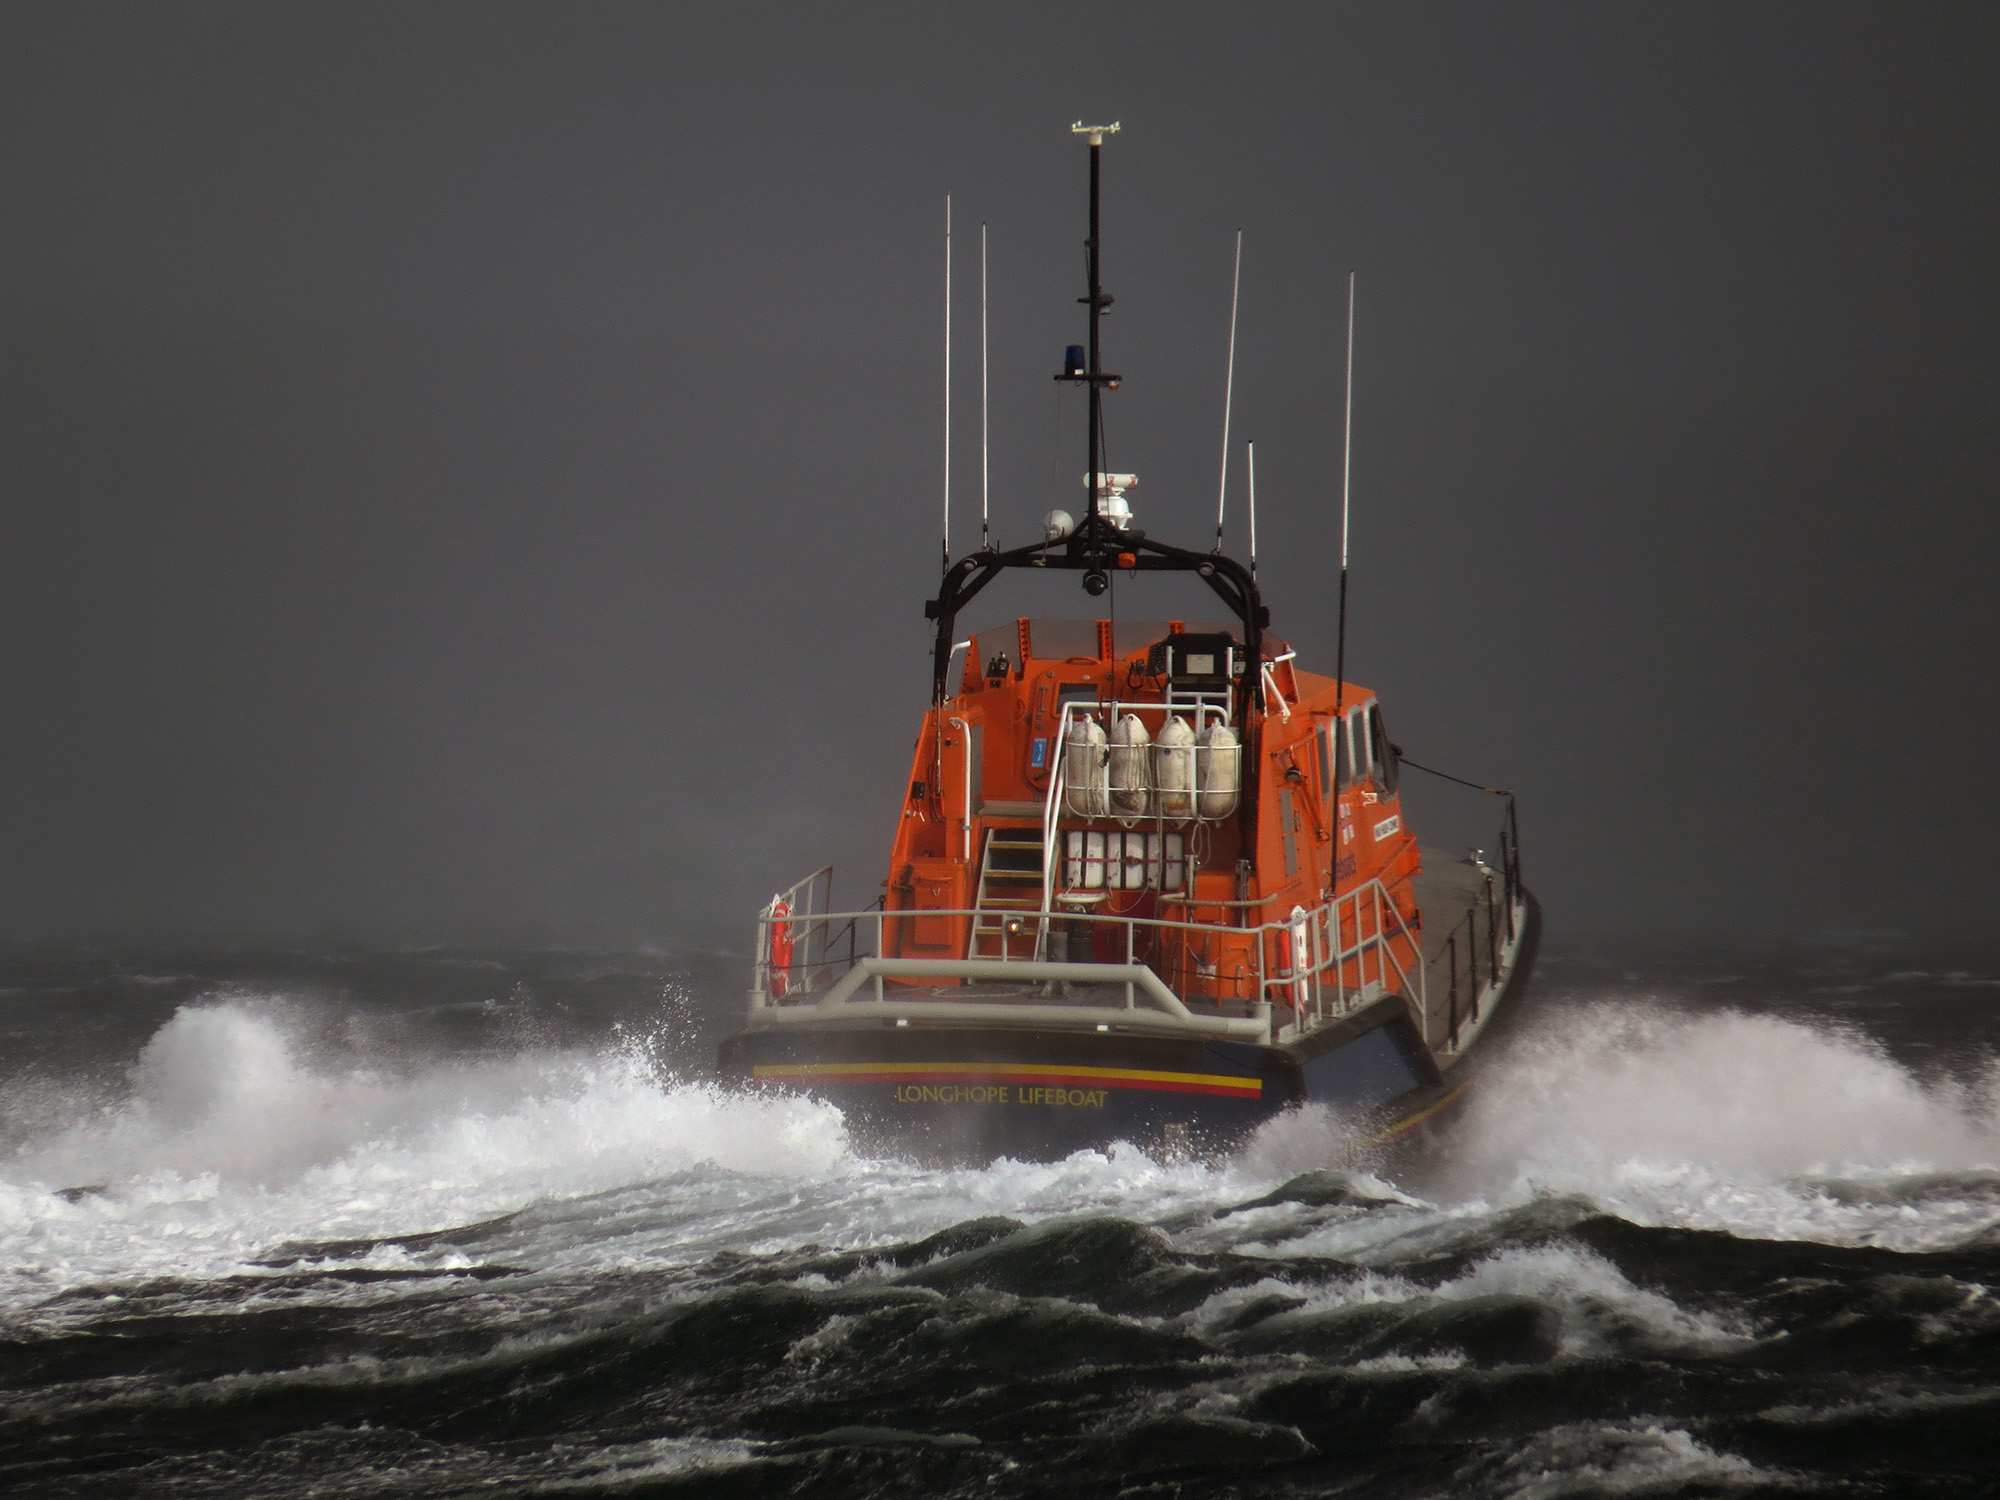 RNLI Longhope Lifeboat leaving station to assist Kirkwall Lifeboat